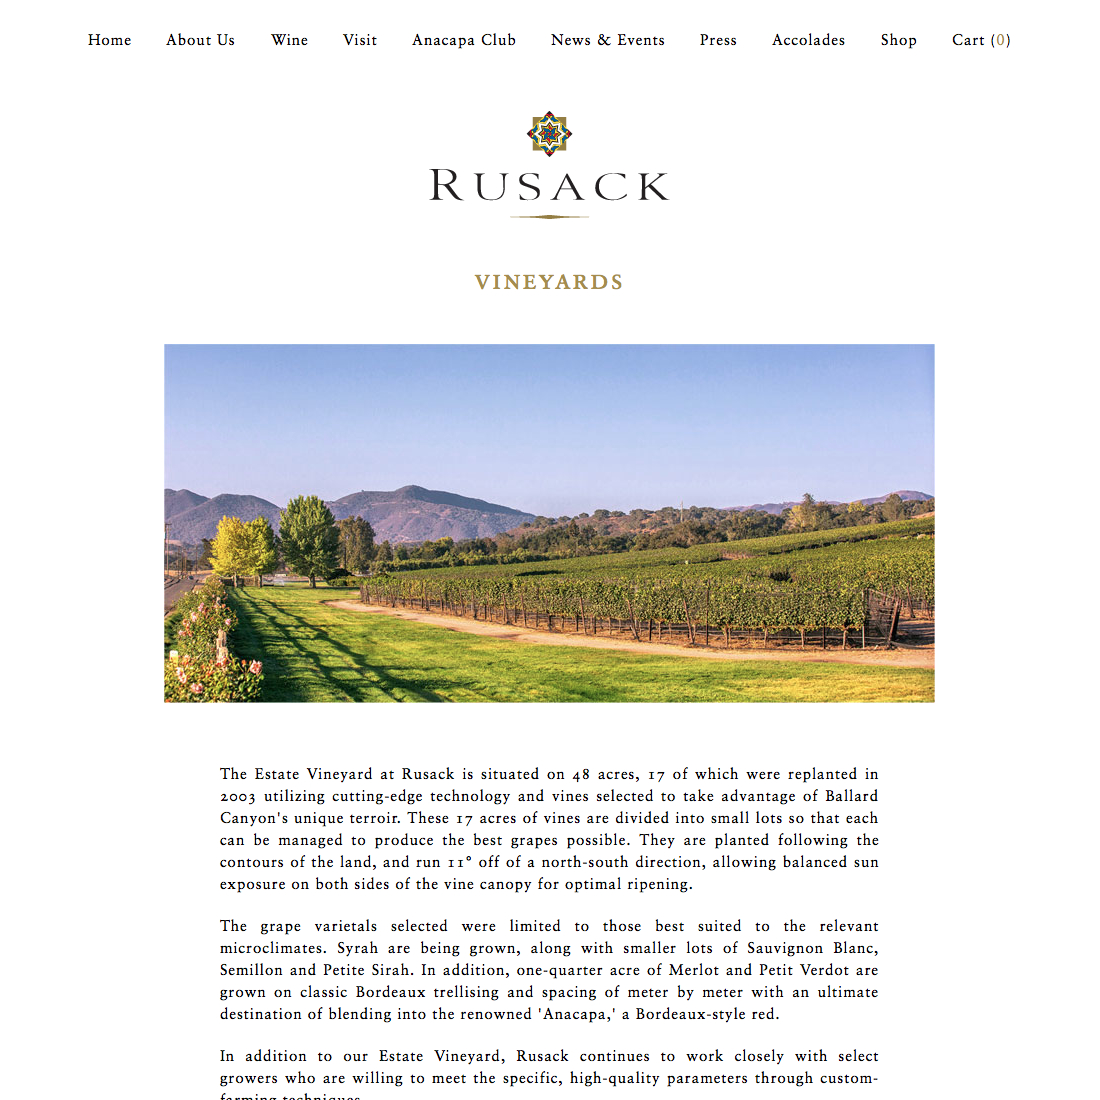 The Estate Vineyard at Rusack is situated on 48 acres, 17 of which were replanted in 2003 utilizing cutting-edge technology and vines selected to take advantage